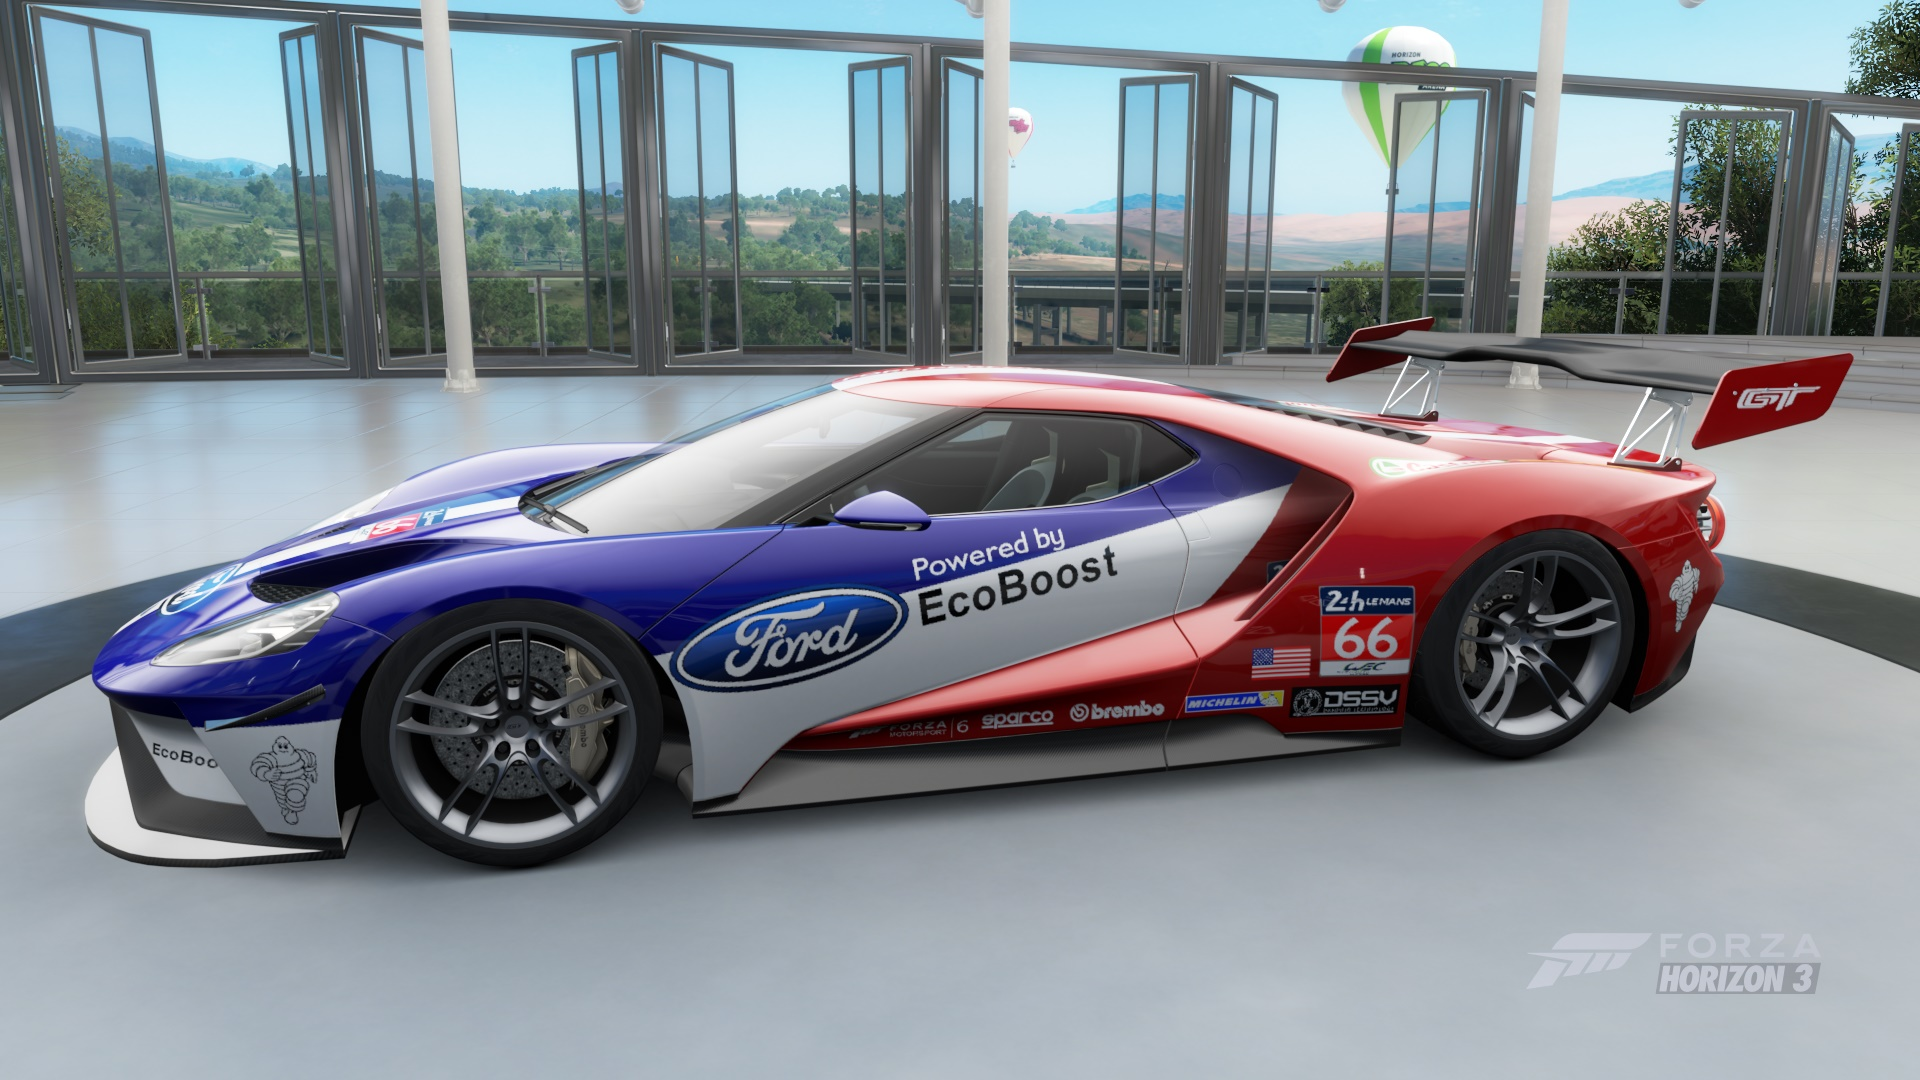 Ford Gt Lemans Livery File Lemans Gt Race Livery